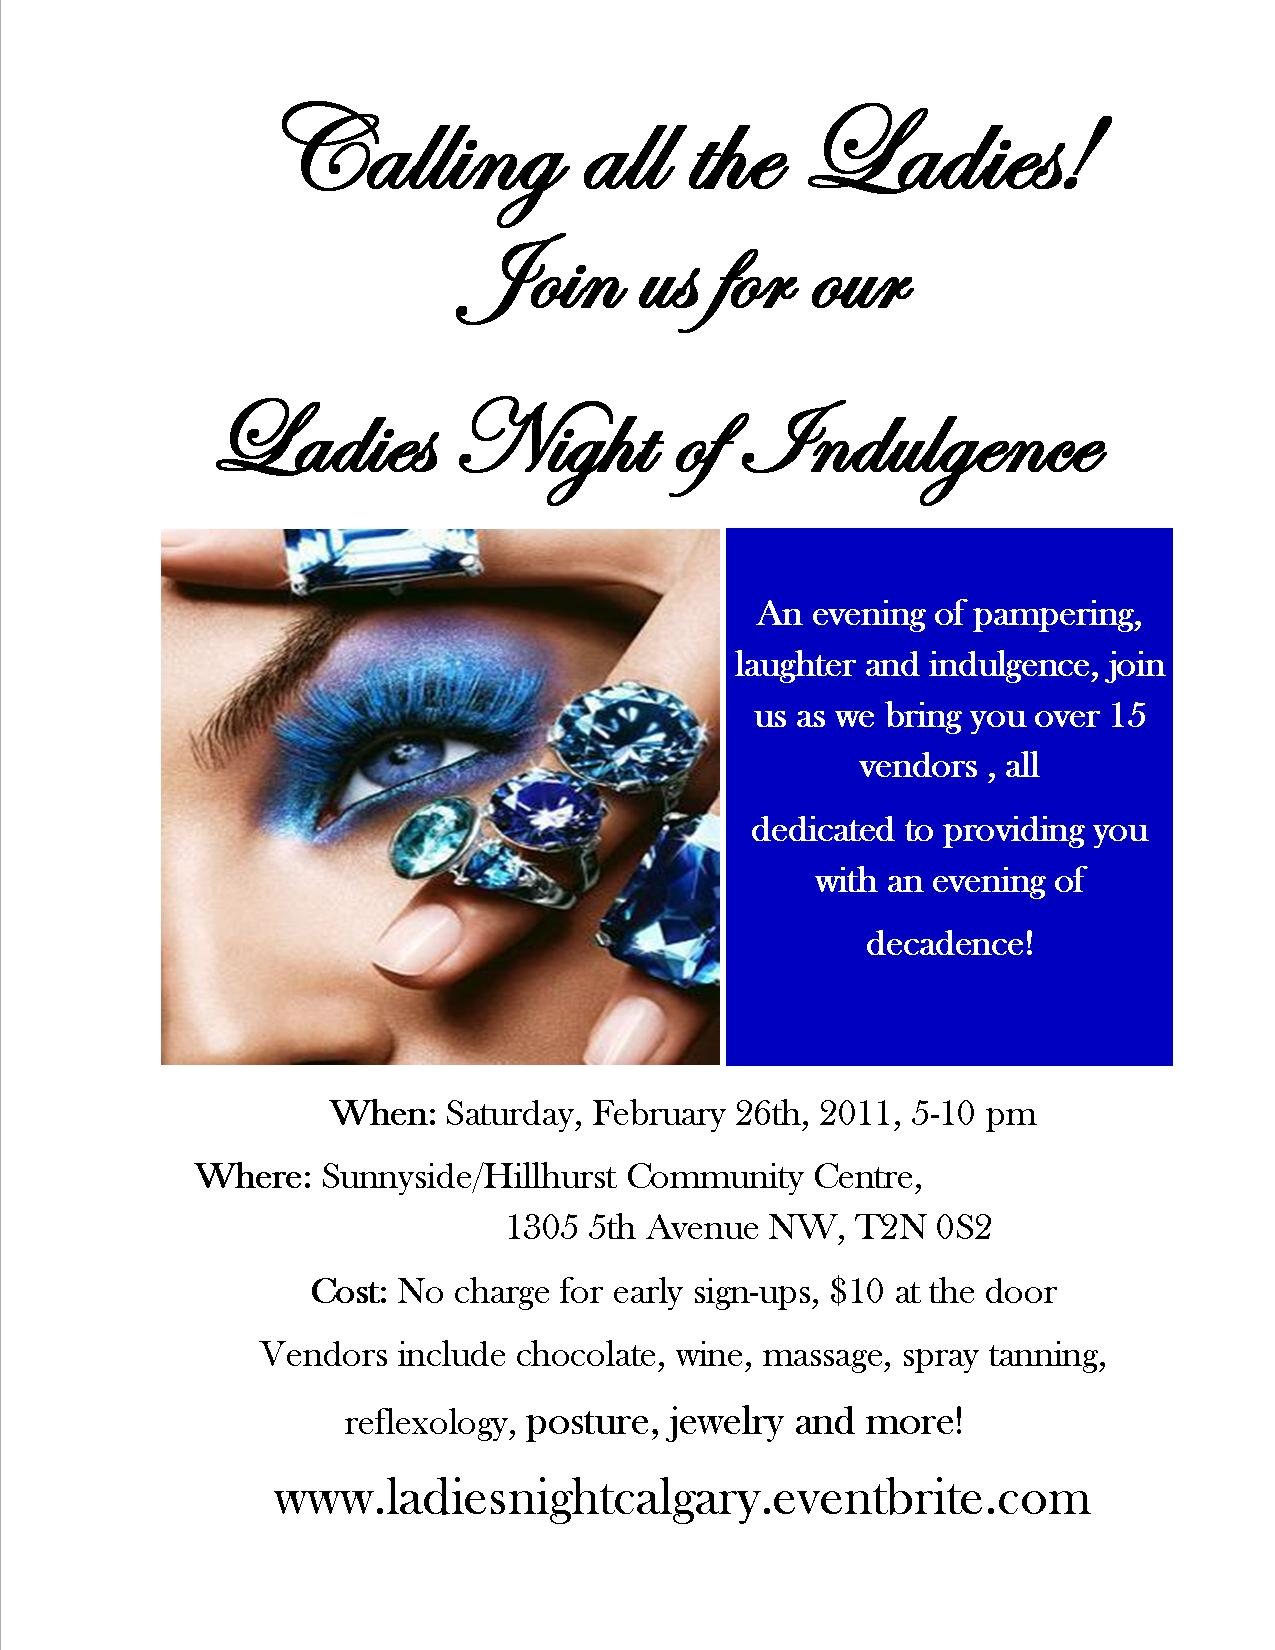 Reminder: Ladies Night of Indulgence